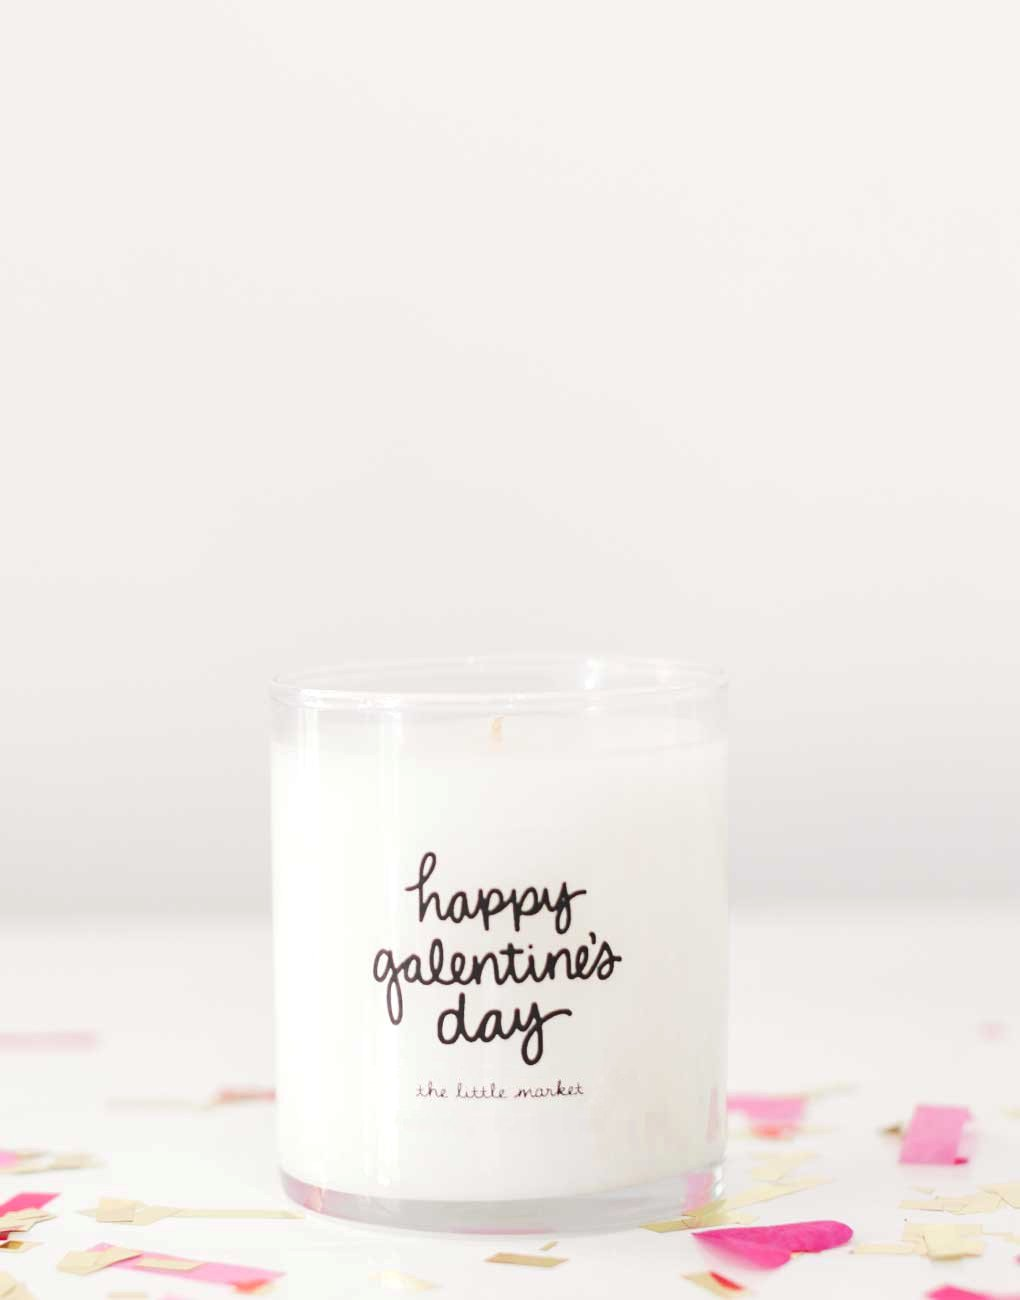 Happy_Galentine_s_Day_Candle_The_Little_Market.jpg